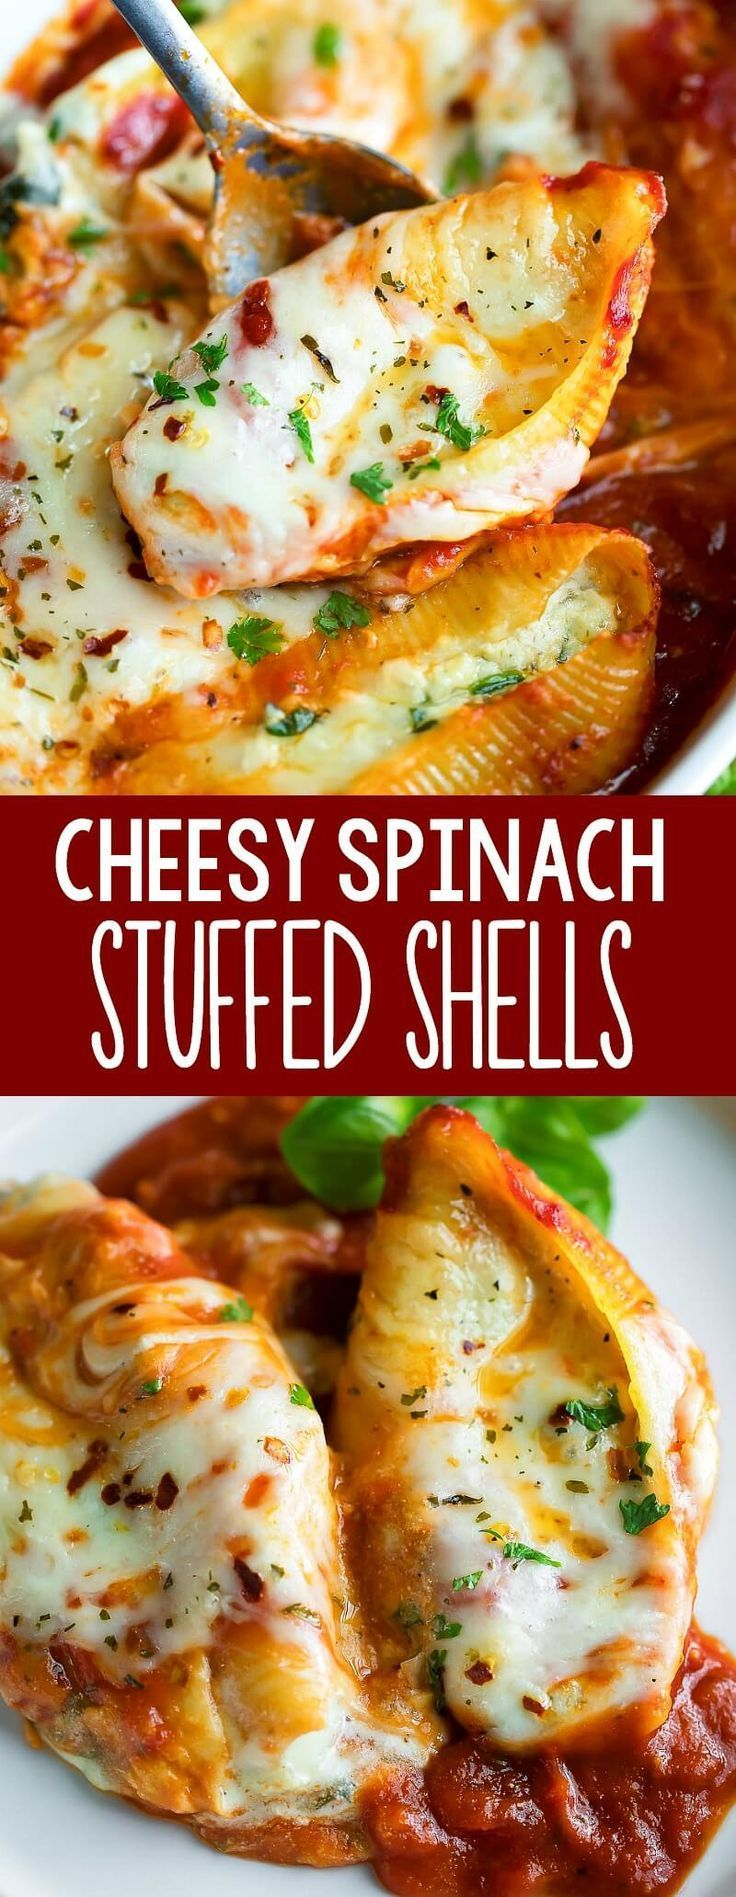 These cheesy spinach stuffed shells are a family favorite! Rock your weeknight dinner routine by making the shells in advance. The leftovers are amazing and can be enjoyed all week long!